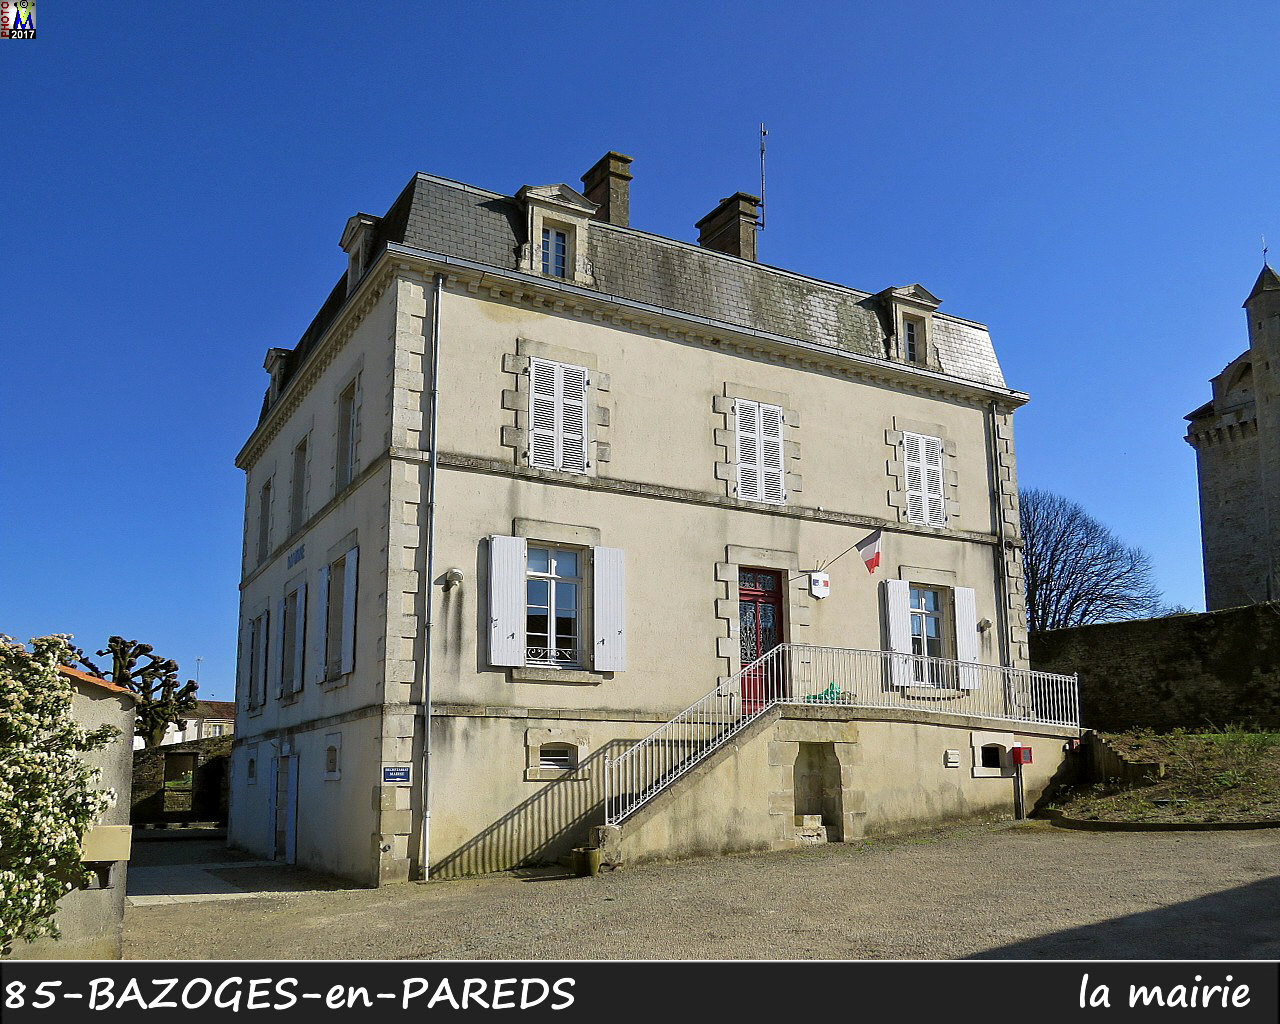 85BAZOGES-PAREDS_mairie_1002.jpg